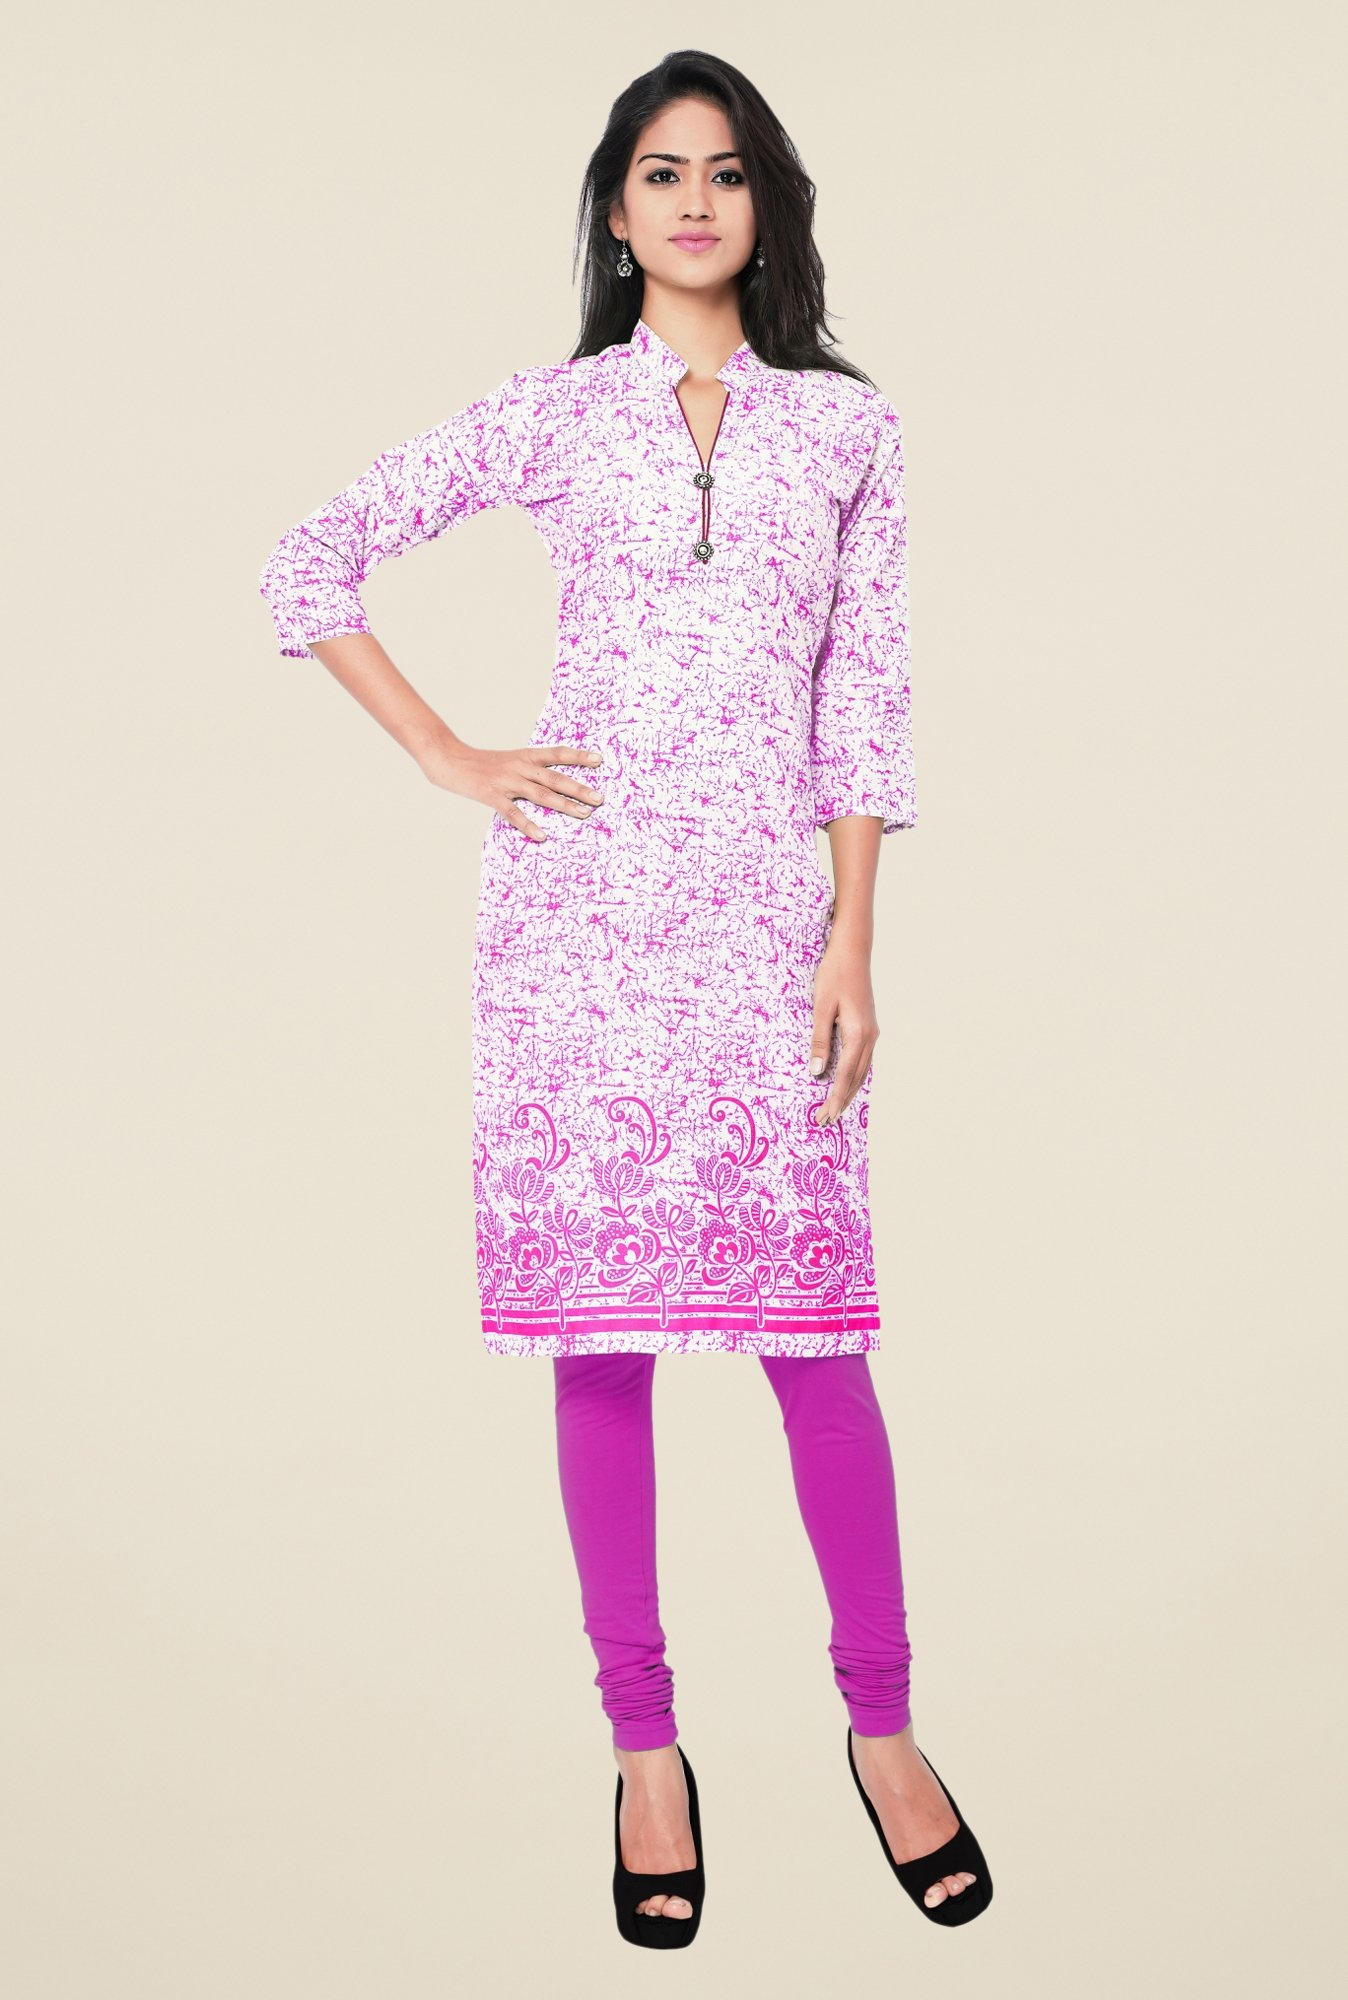 Triveni Pink Printed Blended Cotton Kurta